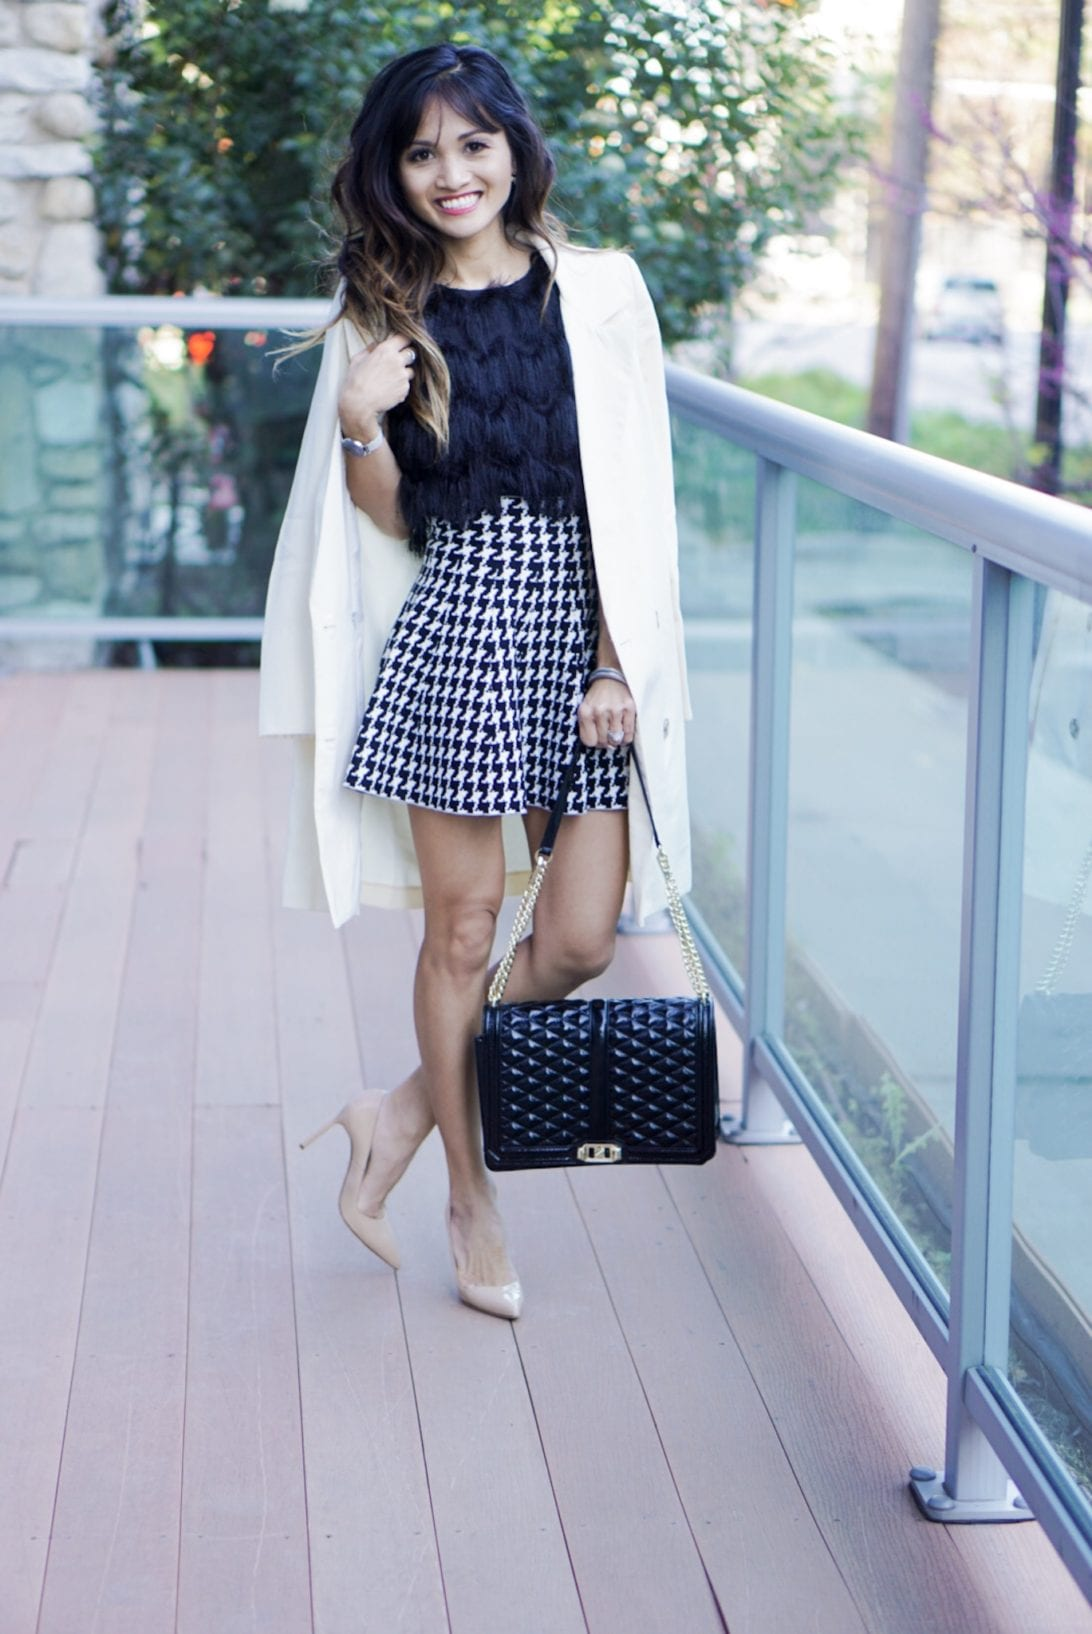 20 Easy Tips for the Best Instagram Post by Houston fashion blogger Dawn P. Darnell - rebecca minkoff, blazer, chicwish, houndstooth skirt, nude heels, fringe top